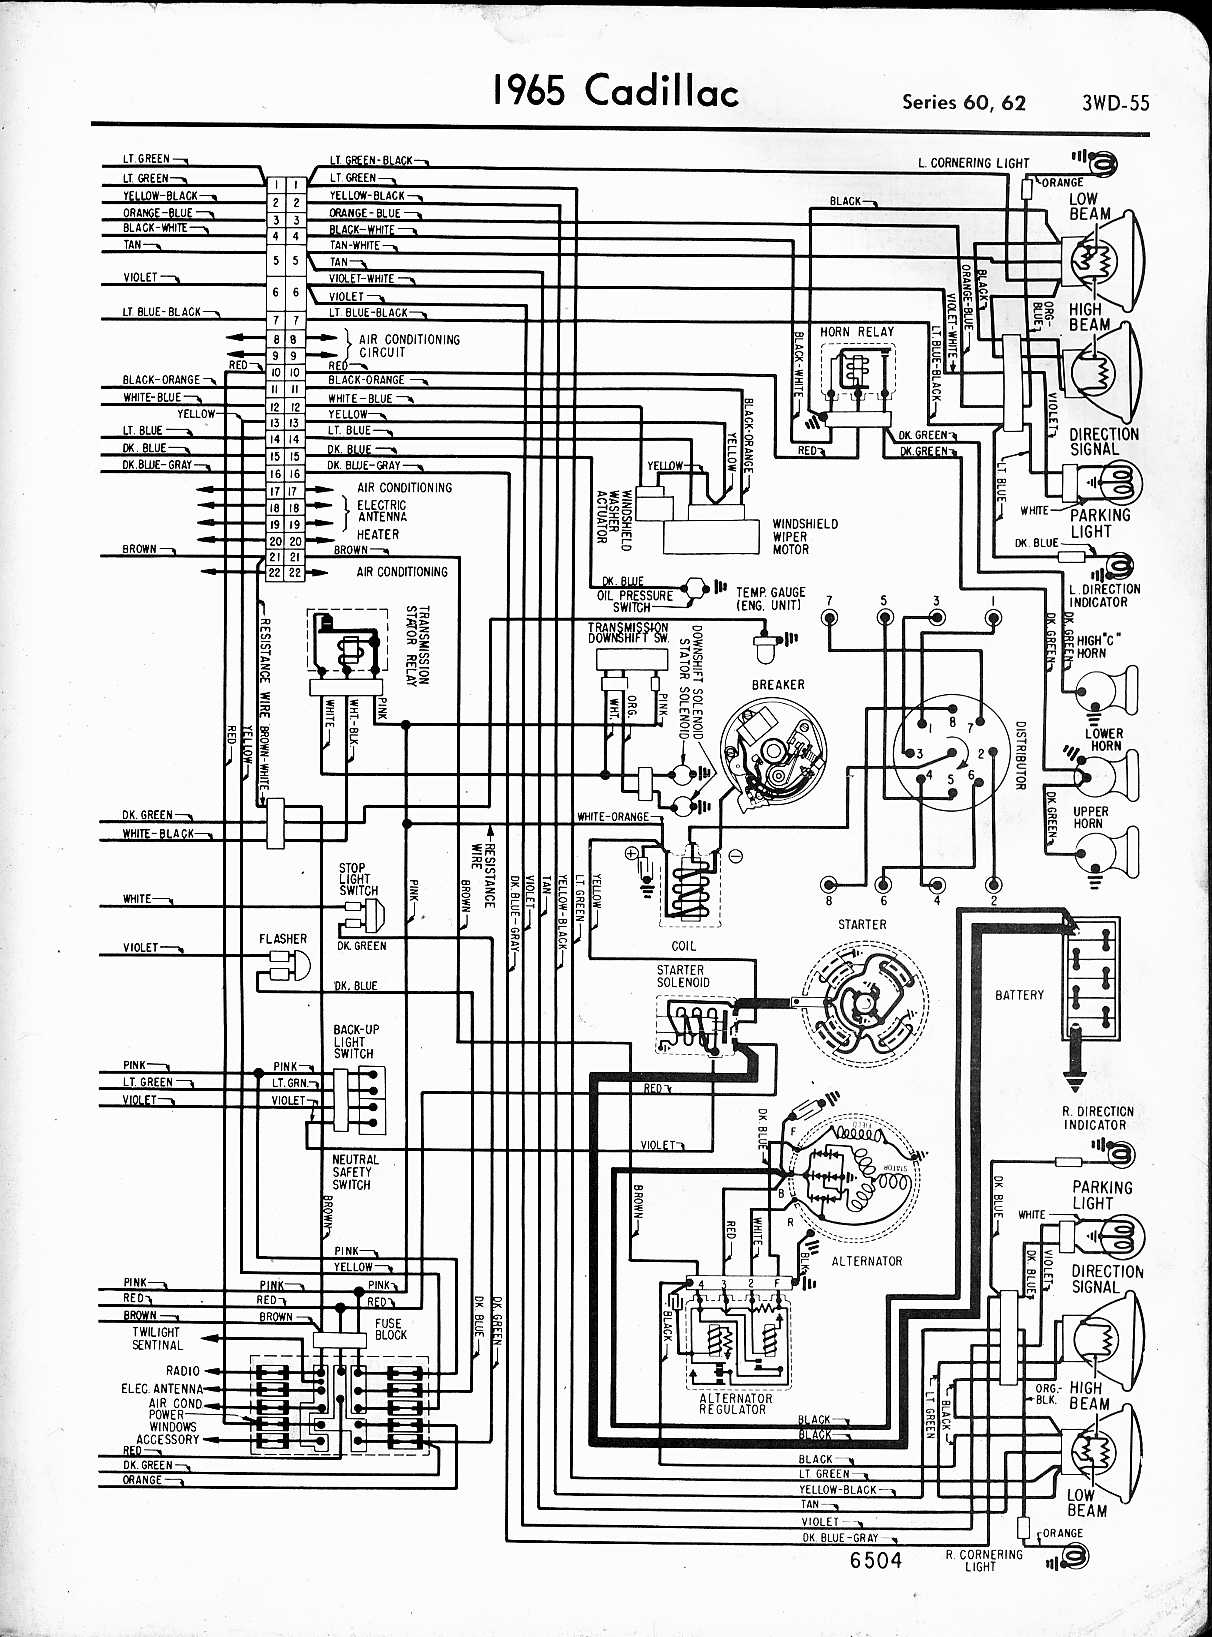 65 cadillac wiring schematic electrical diagram schematics rh zavoral genealogy com Cadillac DeVille Wiring-Diagram Wiring Diagram for 1992 Cadillac Fleetwood